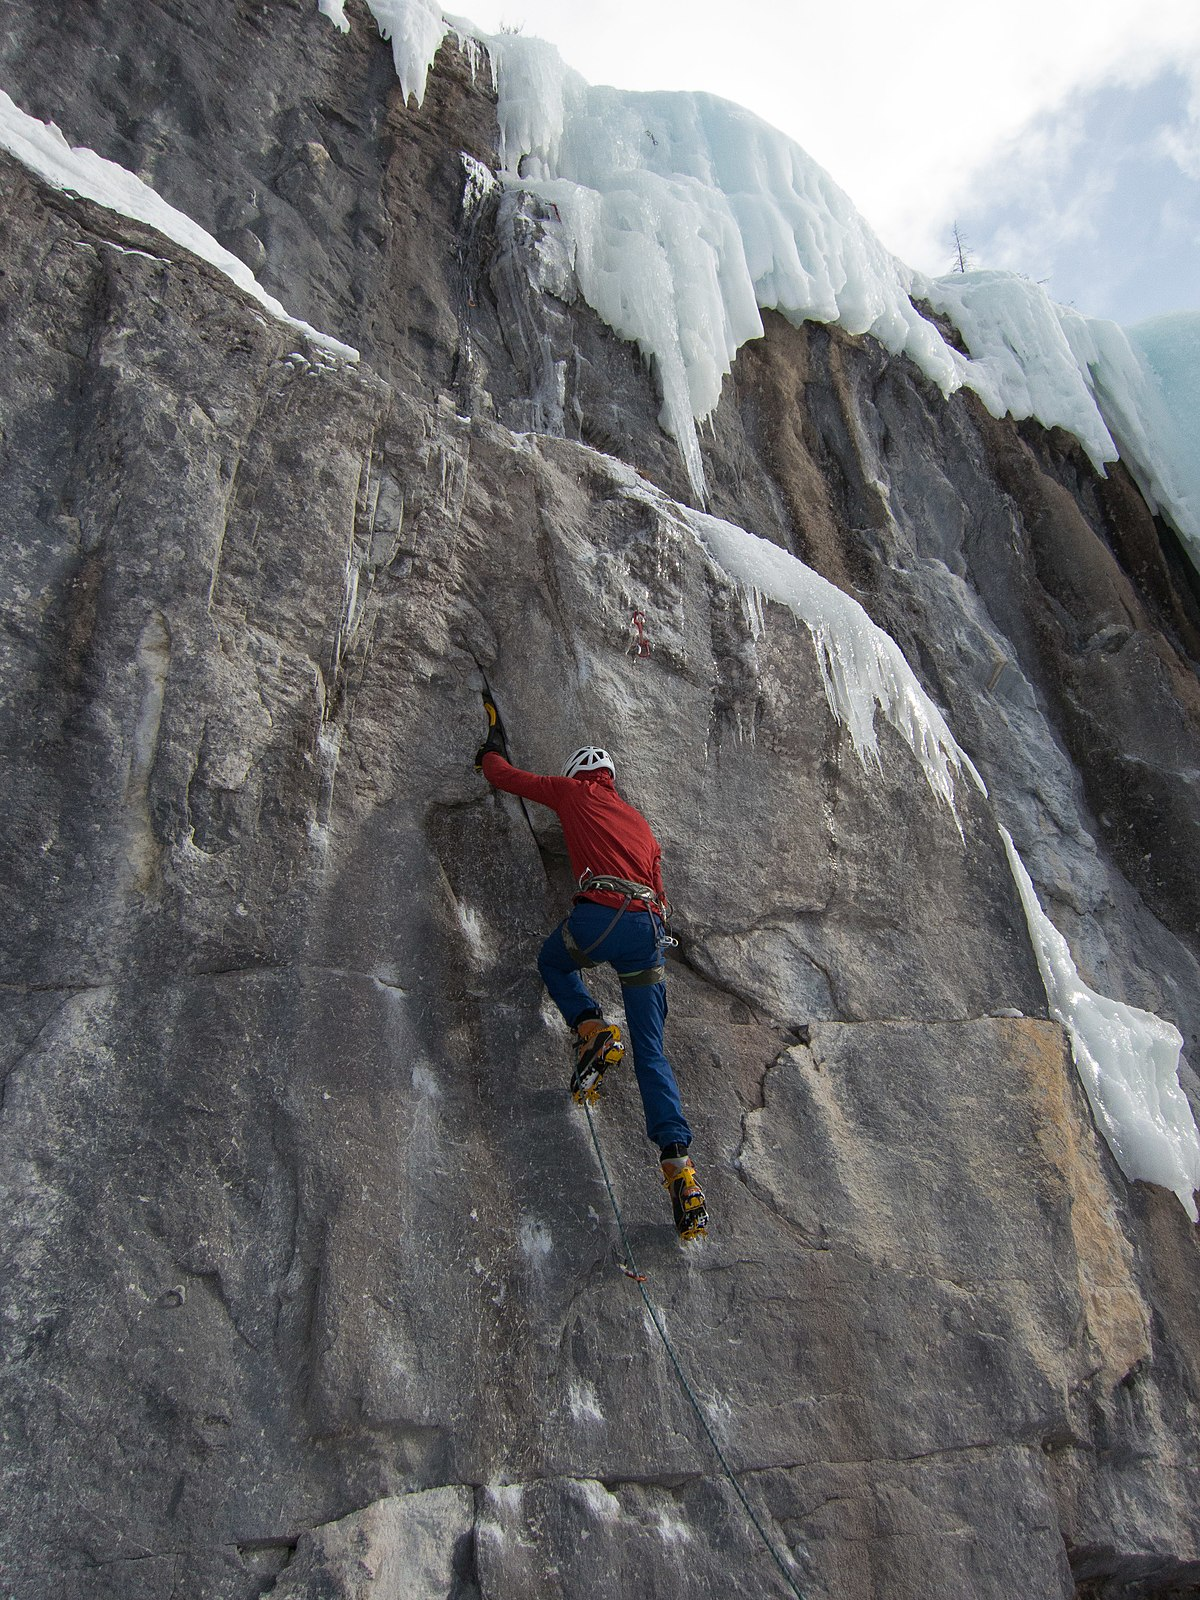 Dry-tooling